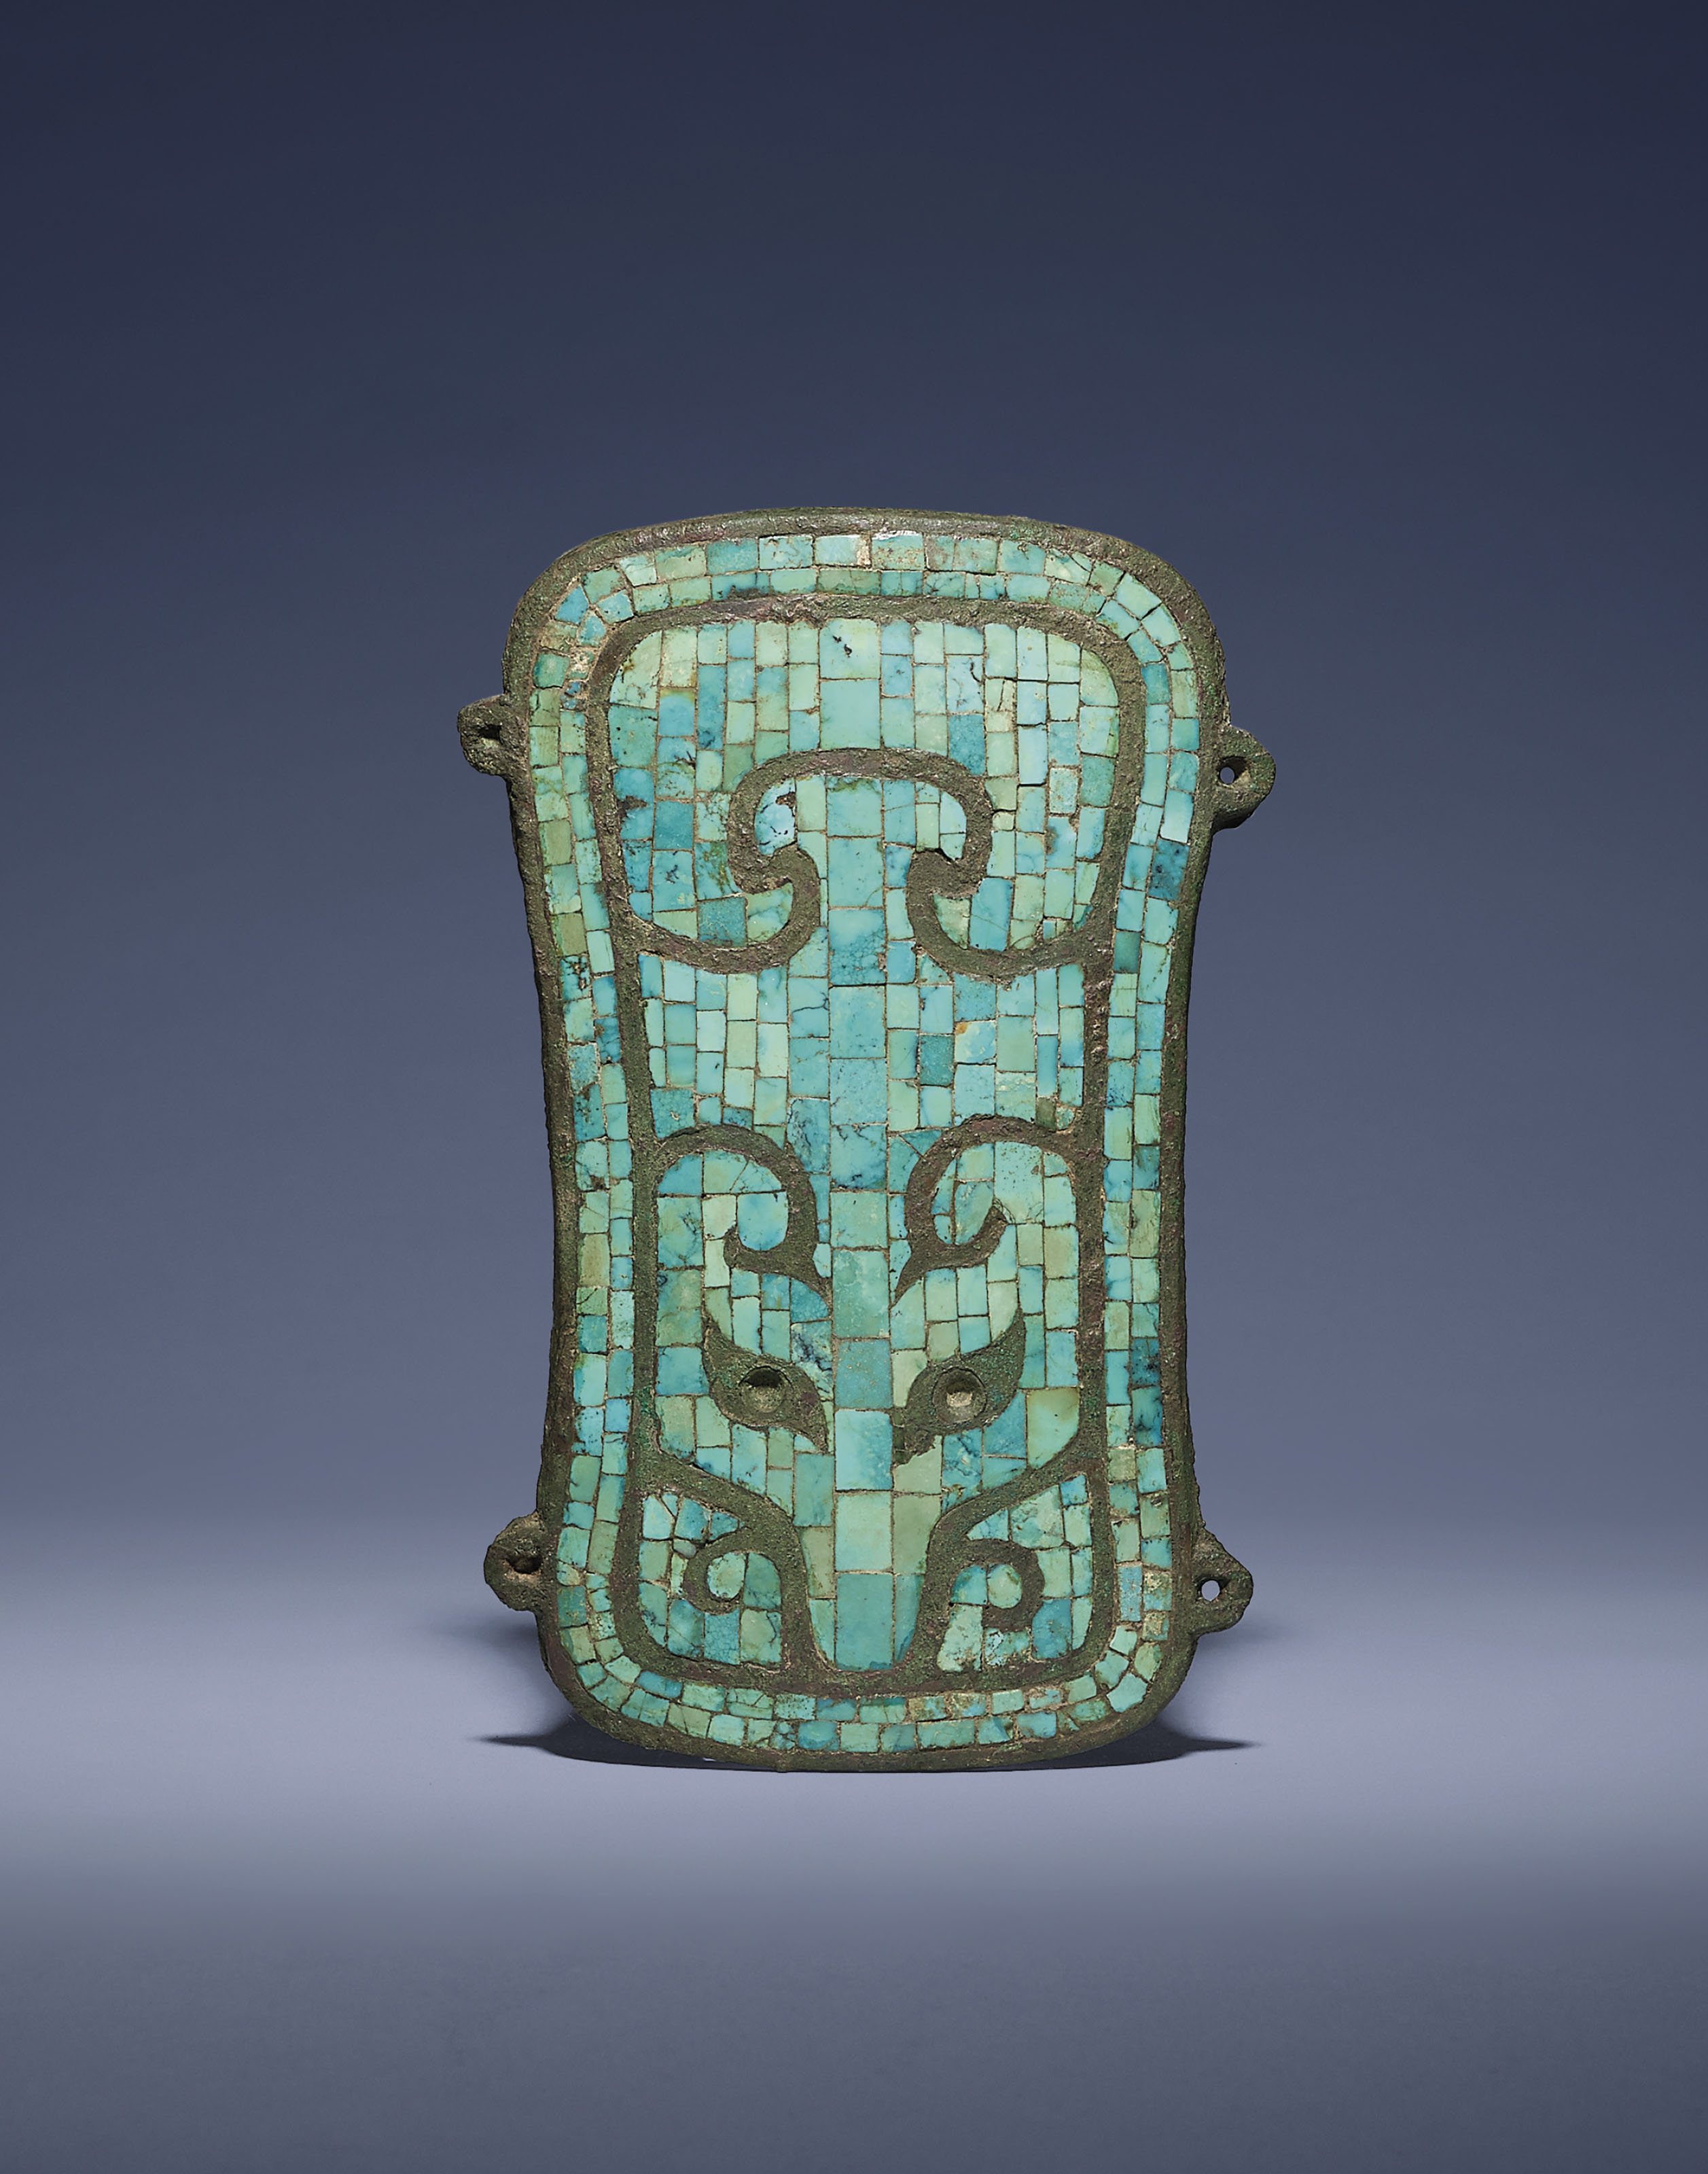 A VERY RARE TURQUOISE-INLAID B